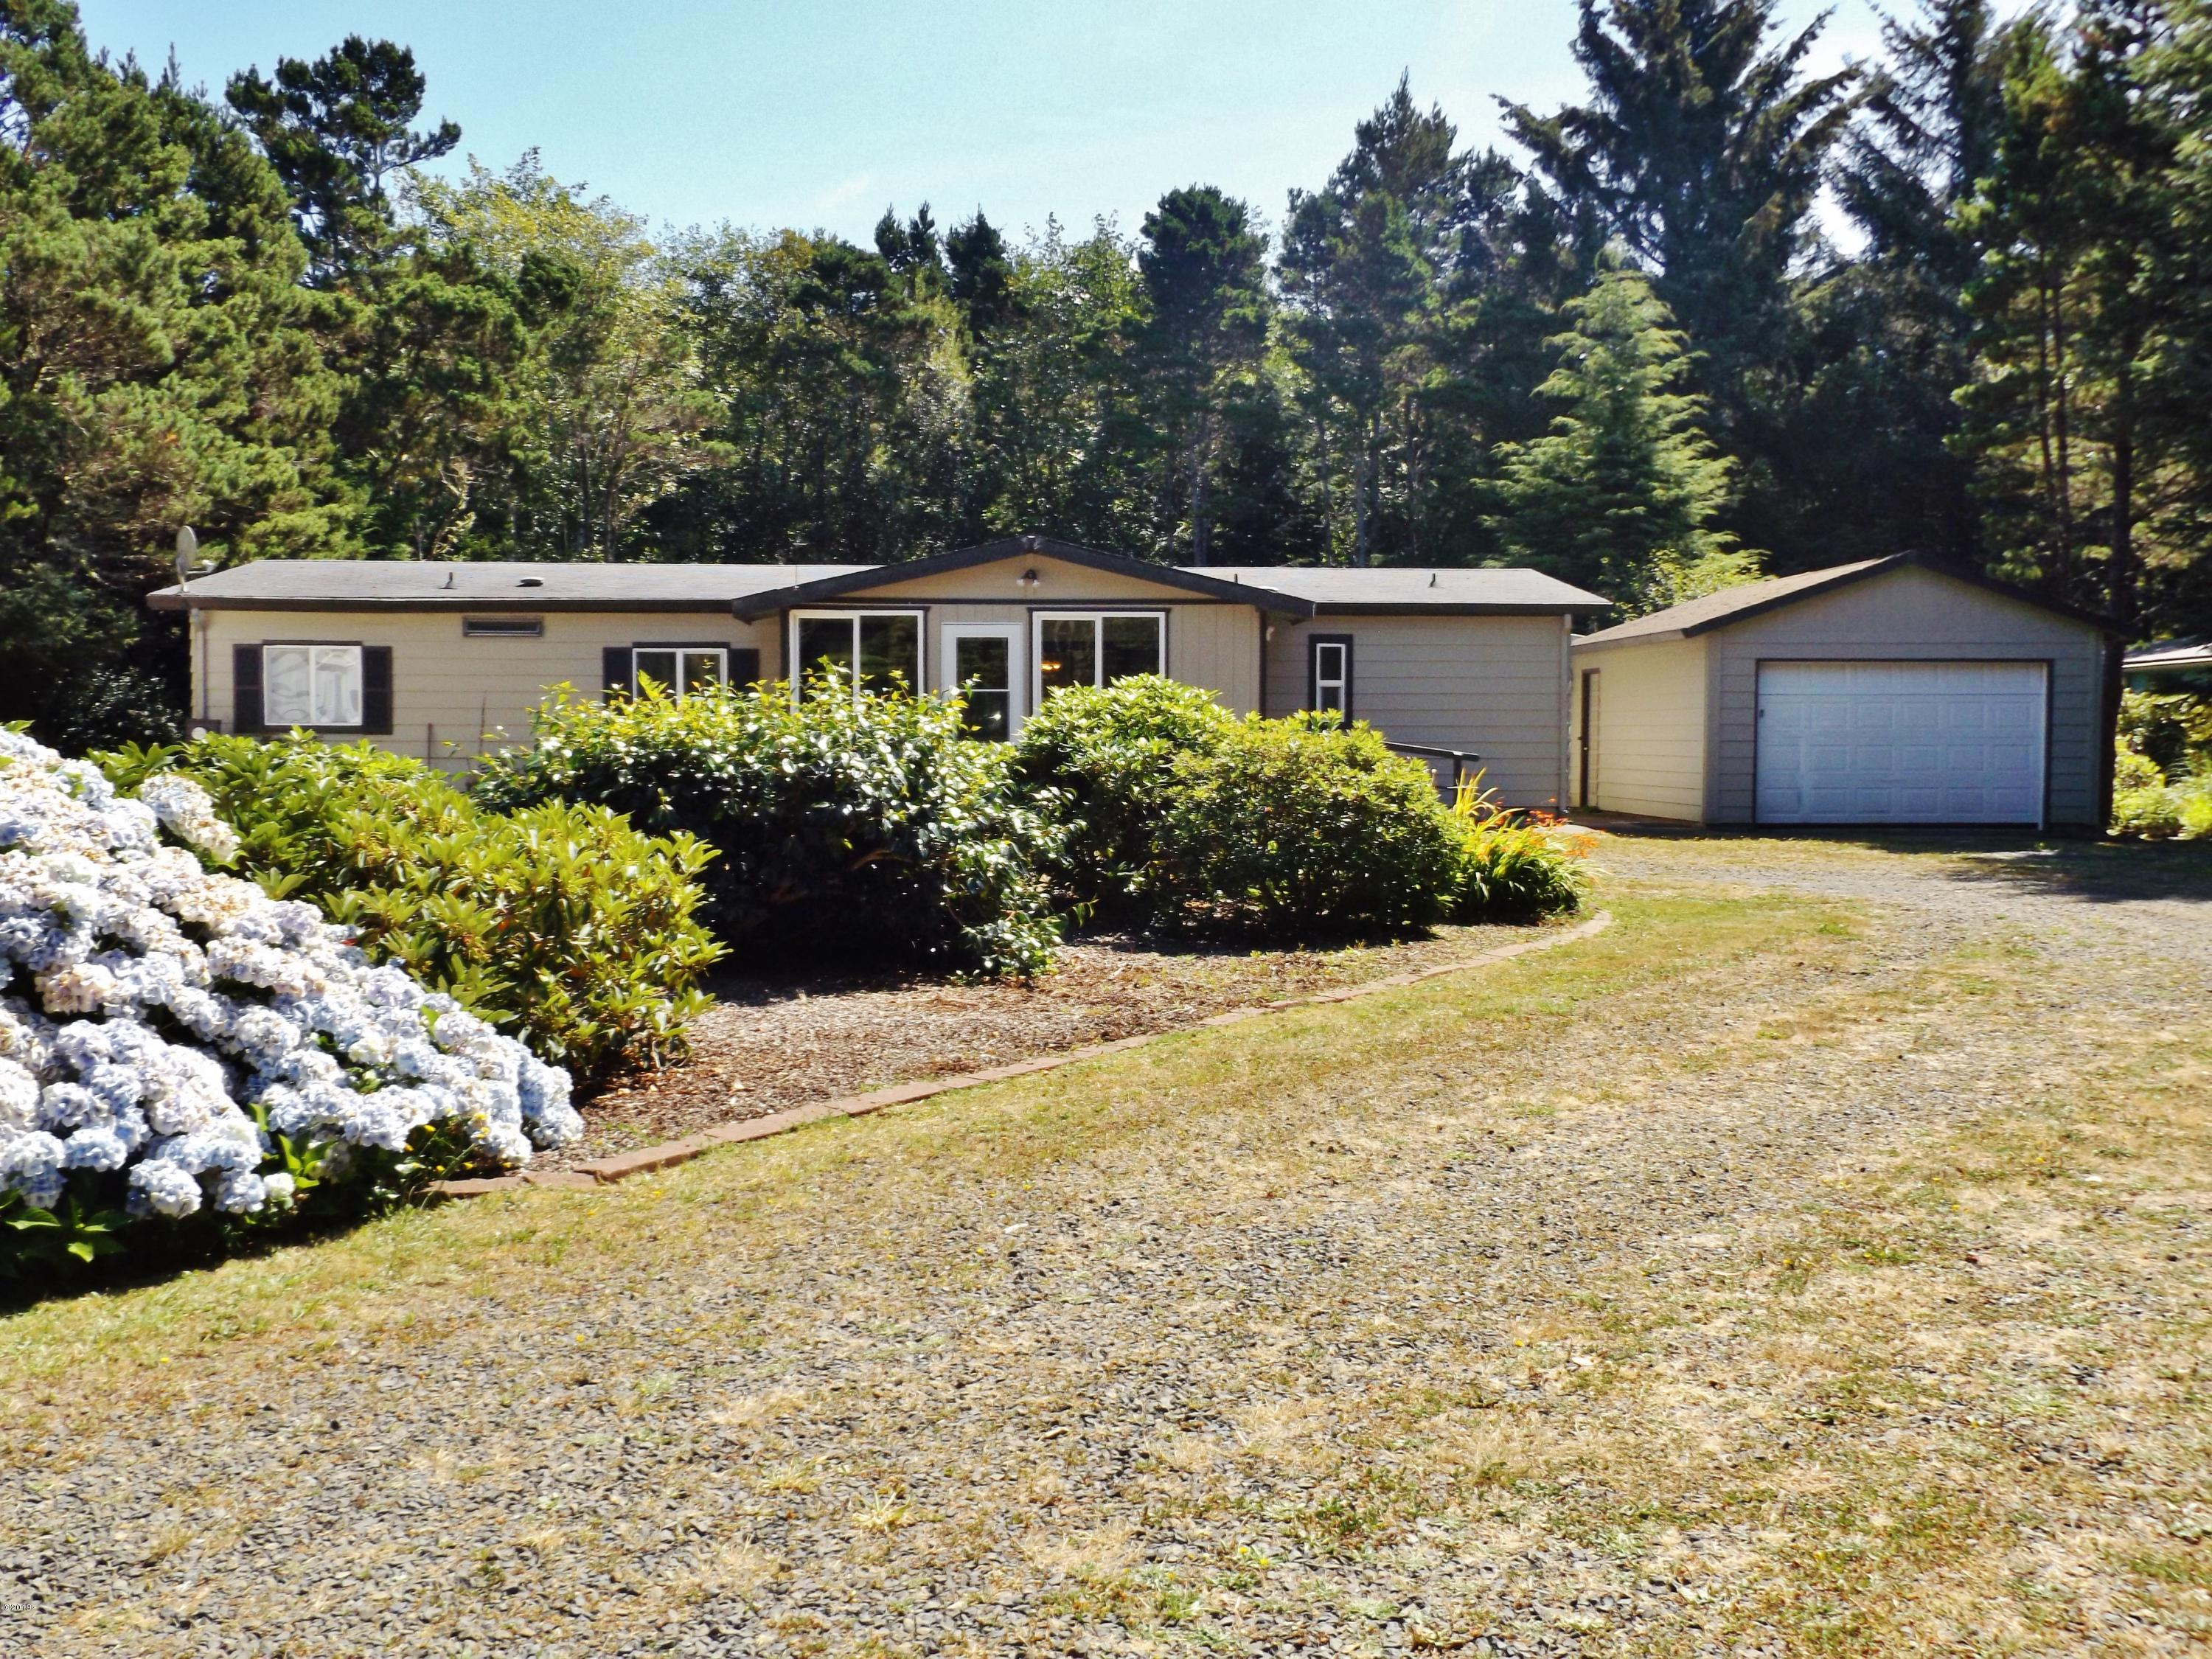 12801 SE Chittum Dr., South Beach, OR 97366 - Main MLS Photo